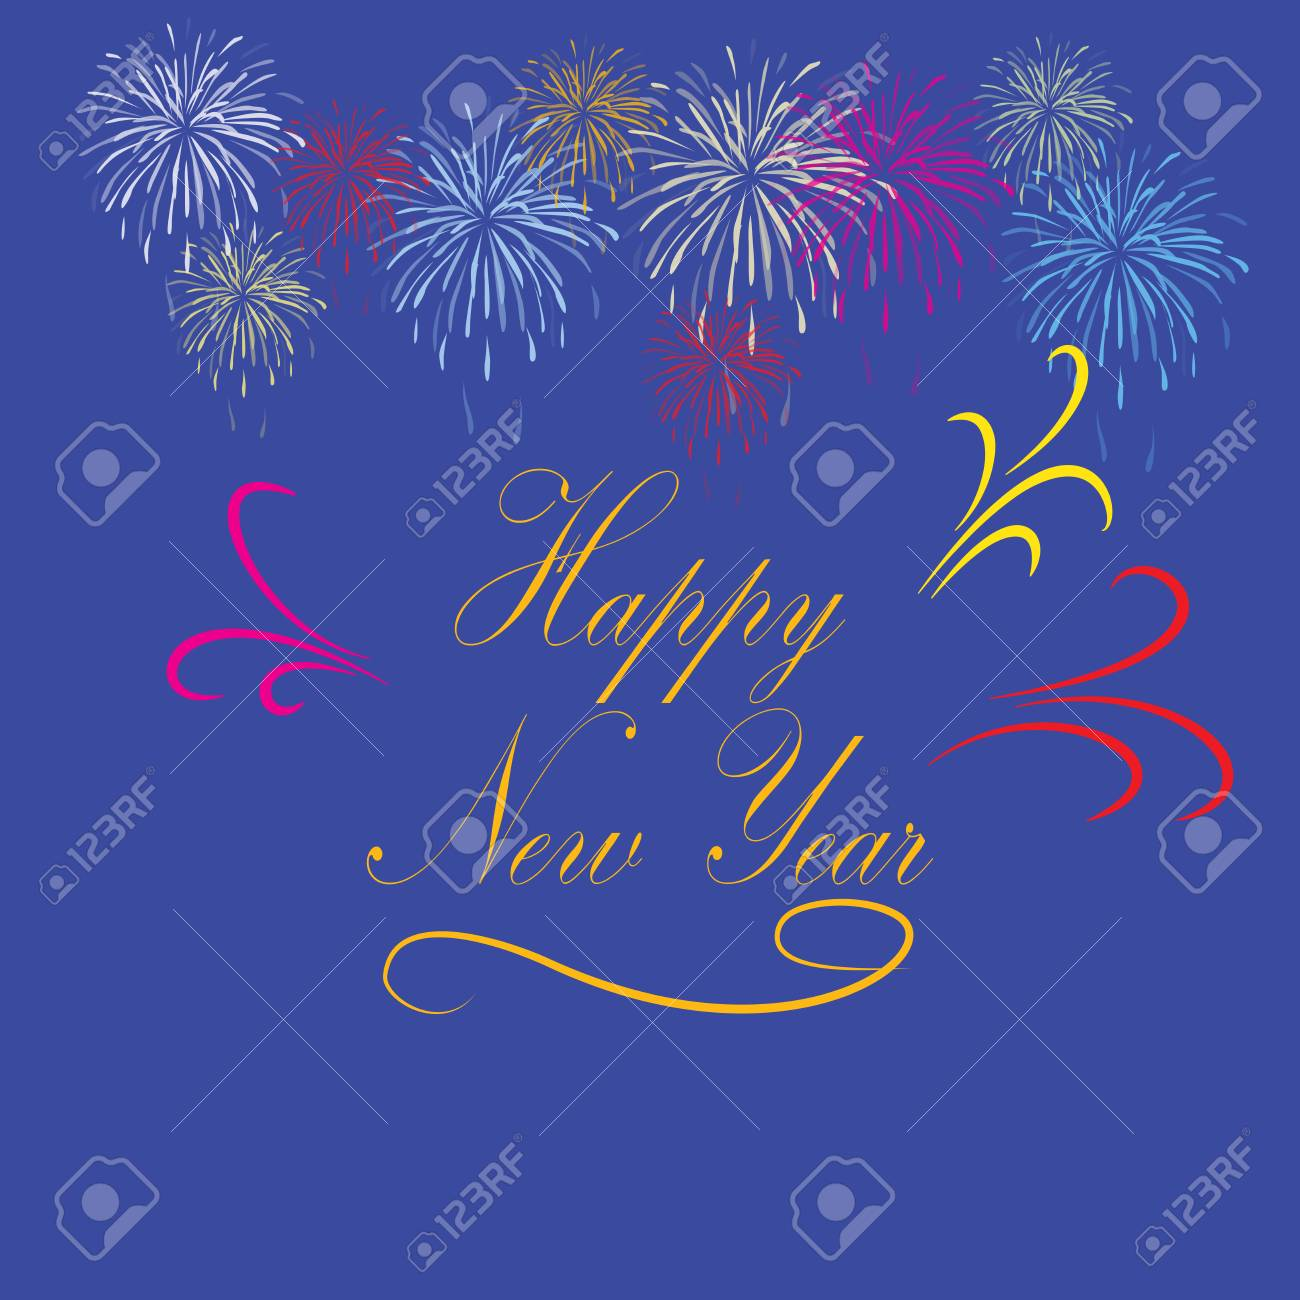 happy new year hand lettering on blue background fashion graphic background design modern stylish